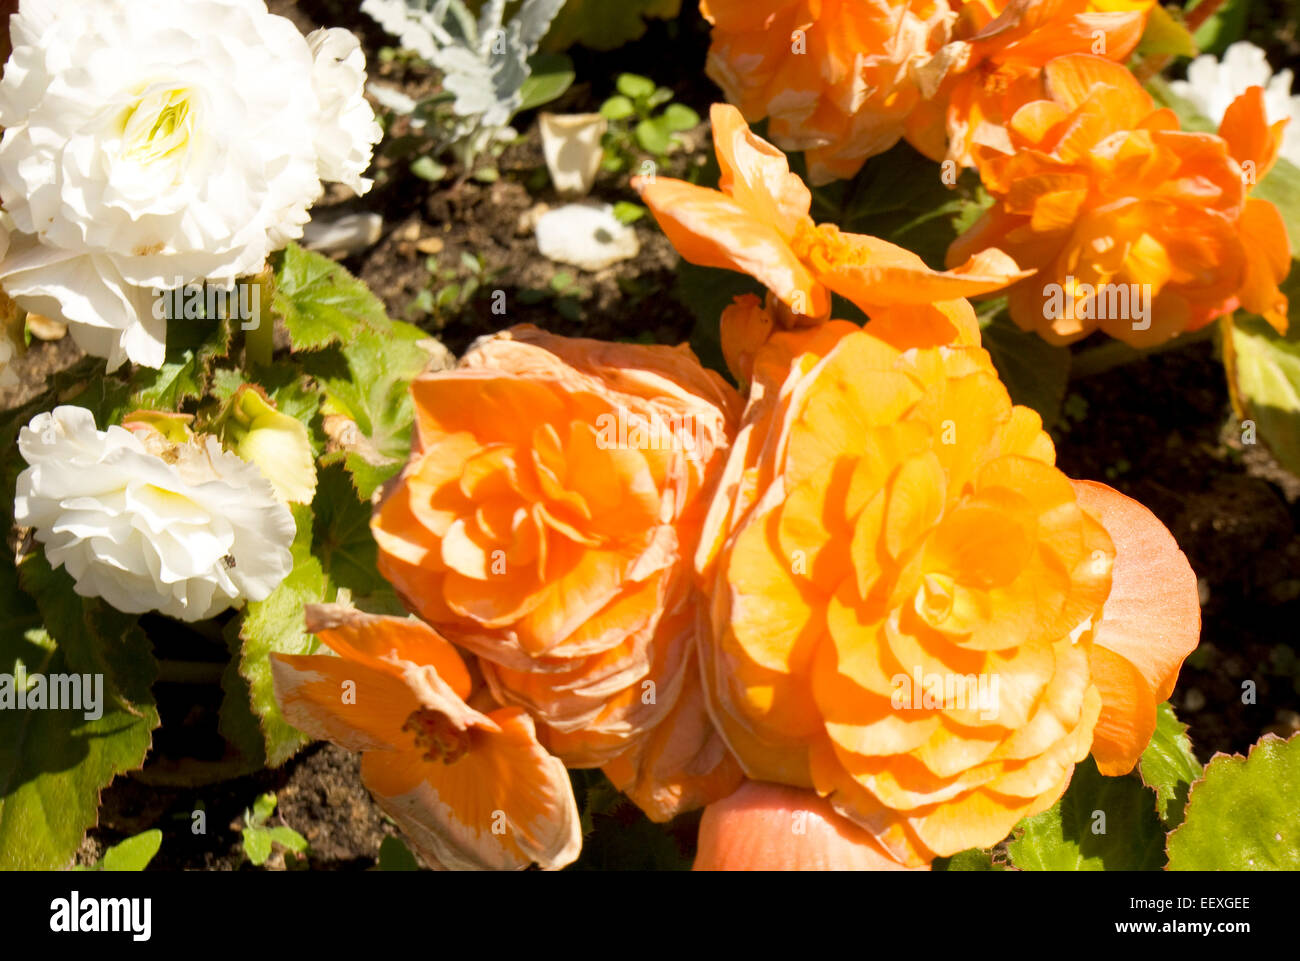 Few Flowers Begonia Of Orange And White Colour On Flower Bed Stock